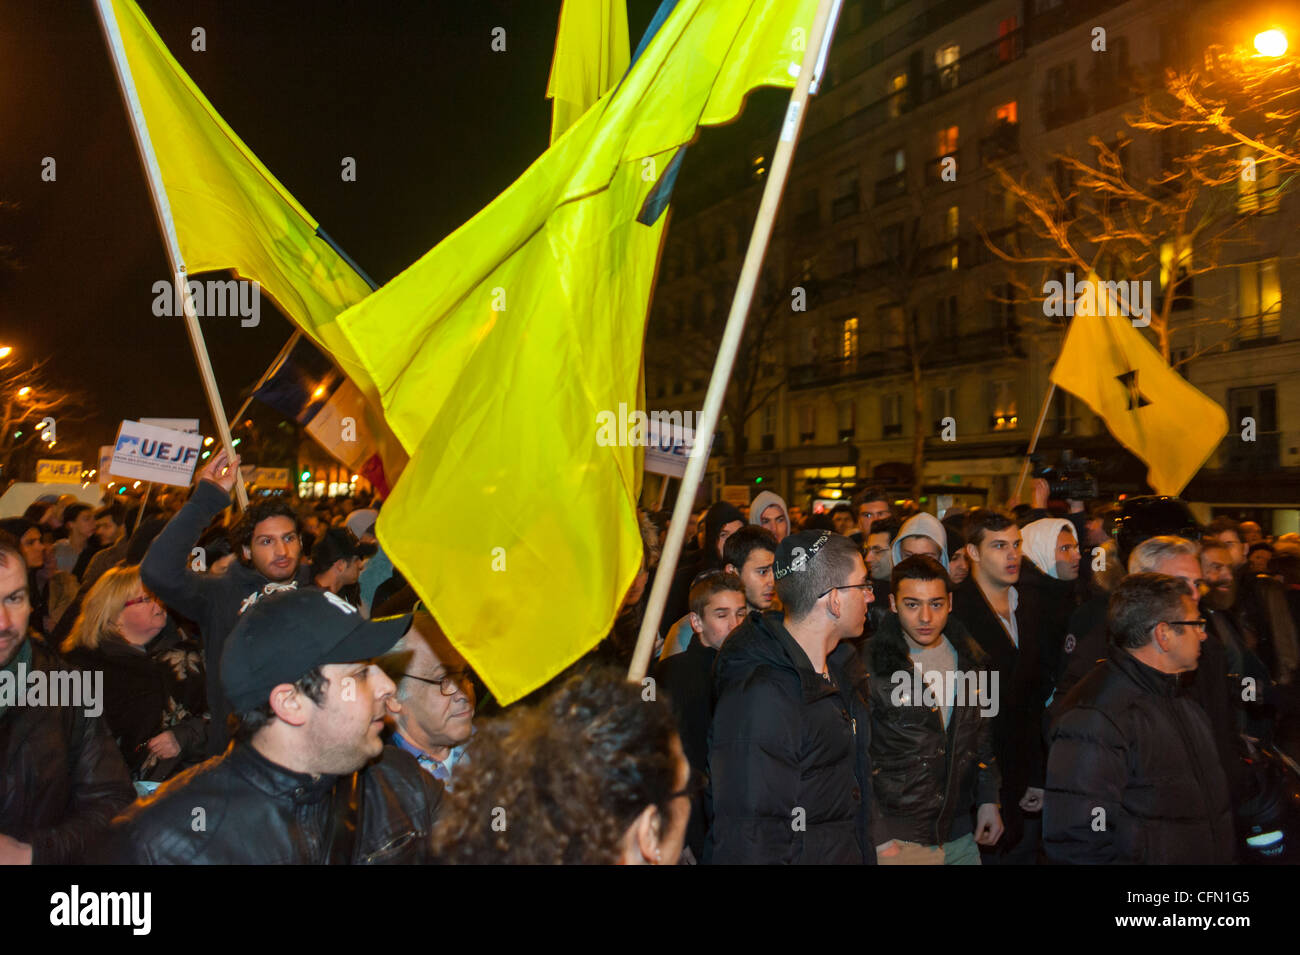 Paris, France, Jewish People in Silent March After Terrorist Attack Against a Jewish Scho-ol in Toulouse, J.D.L. - Stock Image